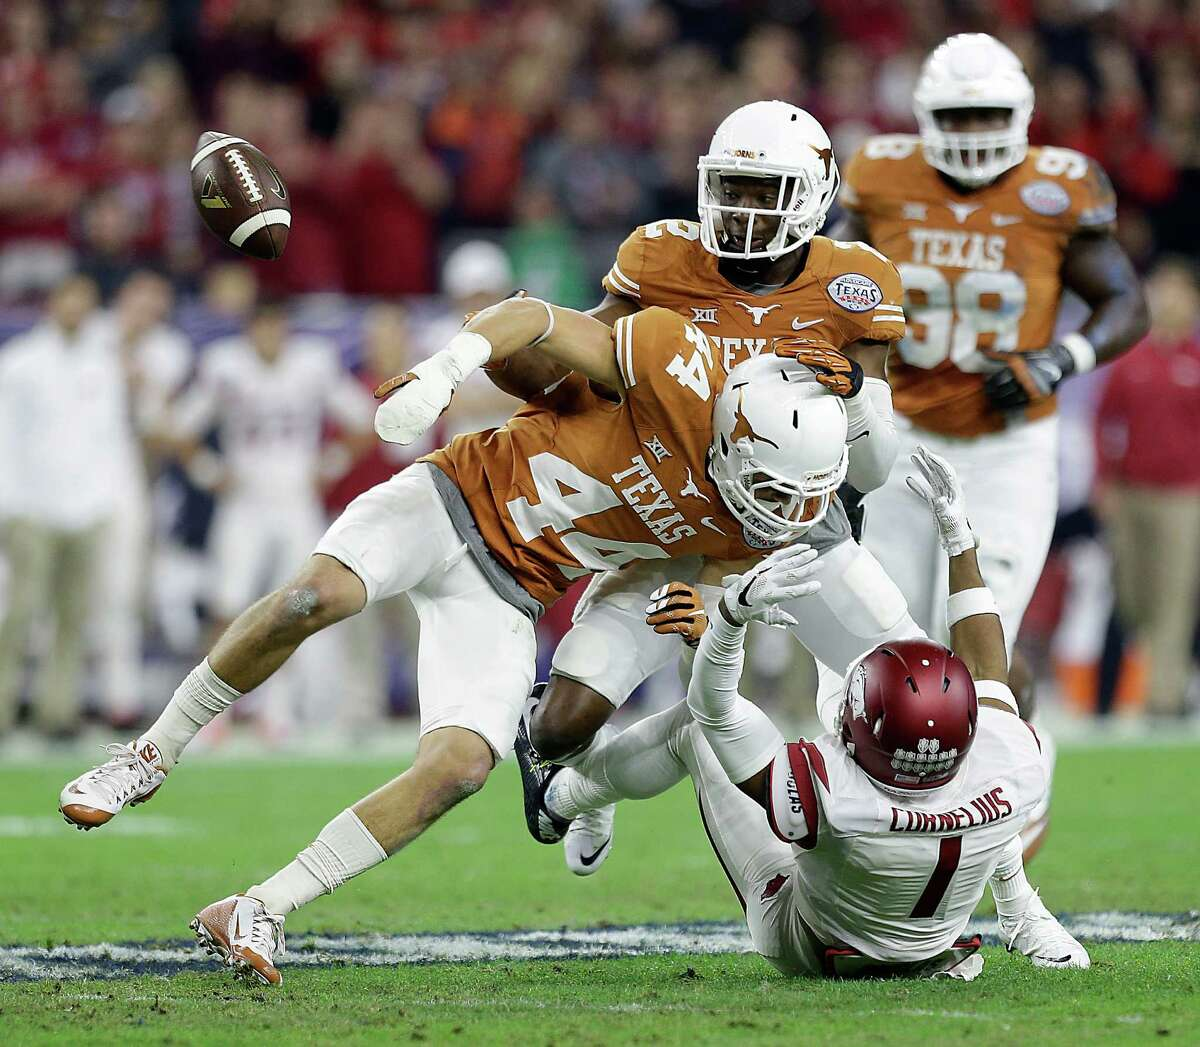 Arkansas wide receiver Jared Cornelius (1) loses control of the ball as he was tackled by Texas defensive back Dylan Haines (44) and safety Mykkele Thompson (2) during the first quarter of the Texas Bowl at NRG Stadium on Dec. 29, 2014, in Houston.